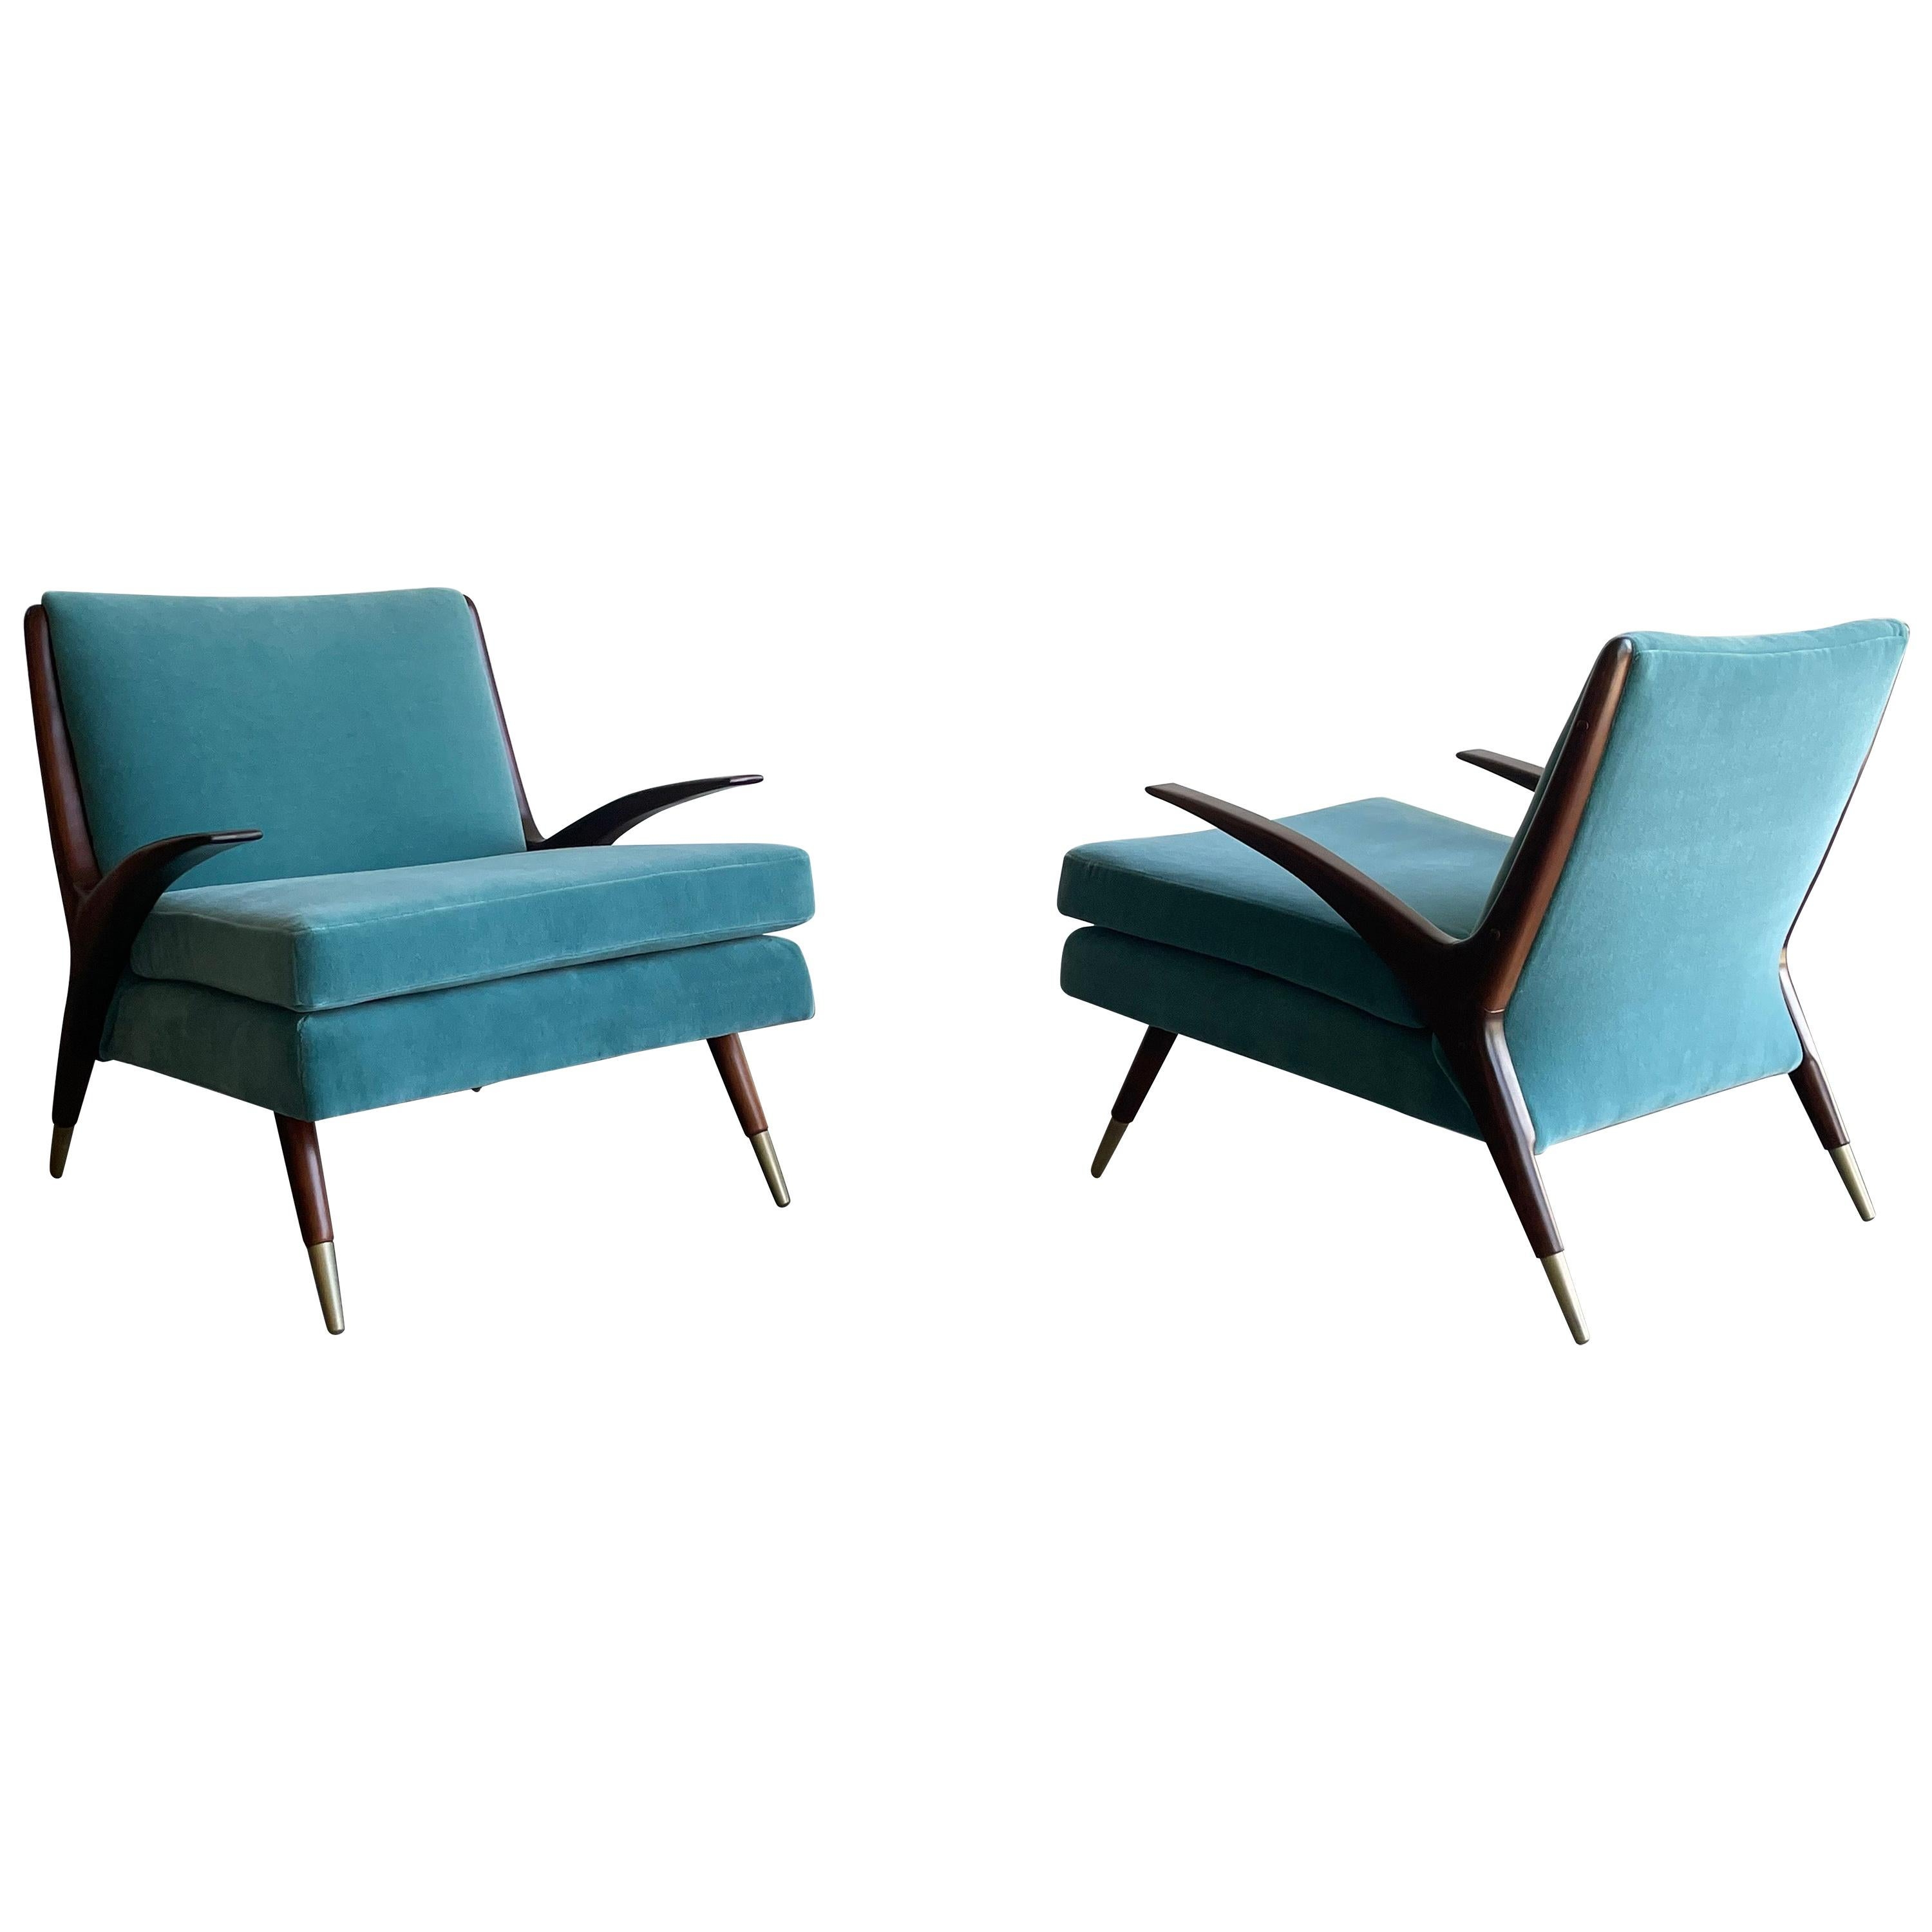 Karpen of California Modernist Lounge Chairs